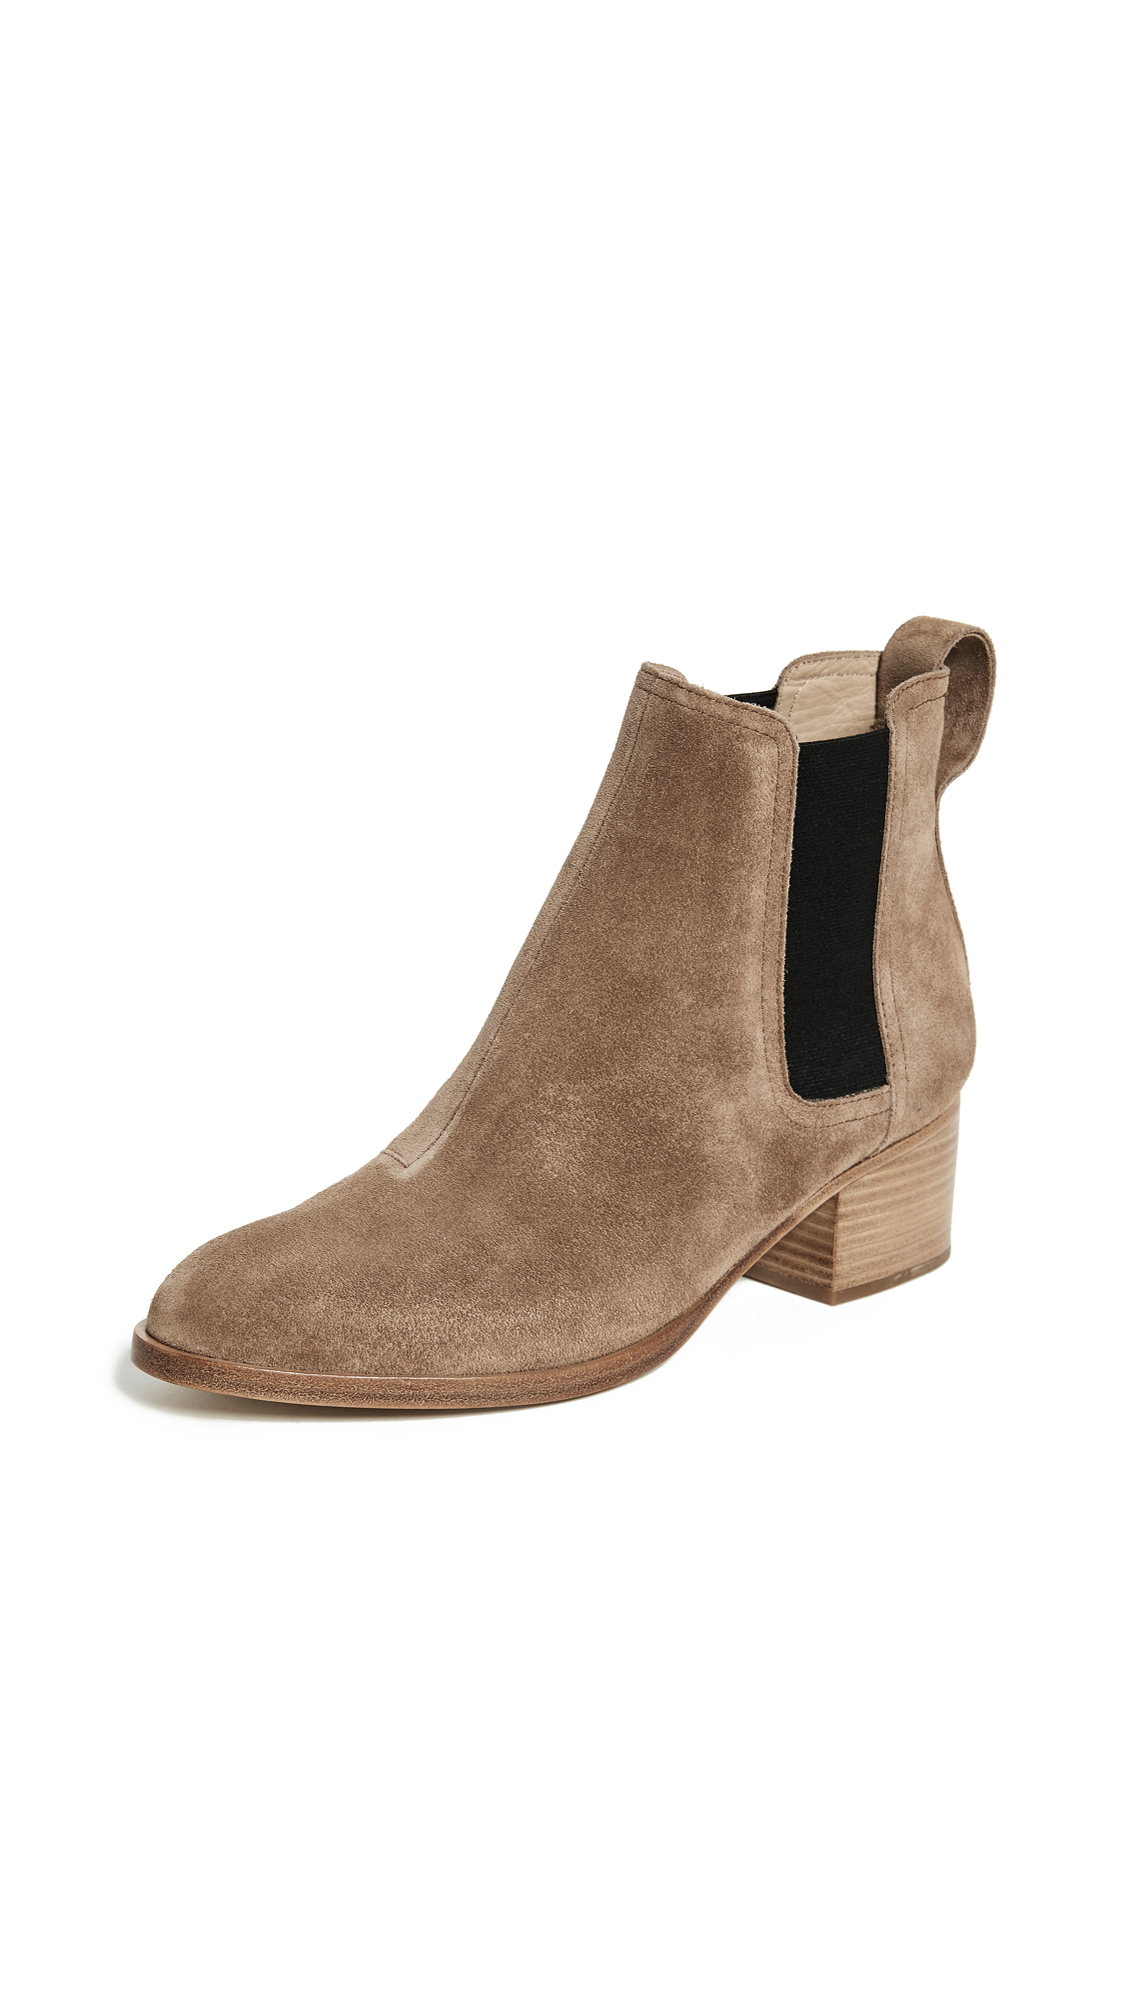 Rag & Bone Walker Booties - 50% Off Sale